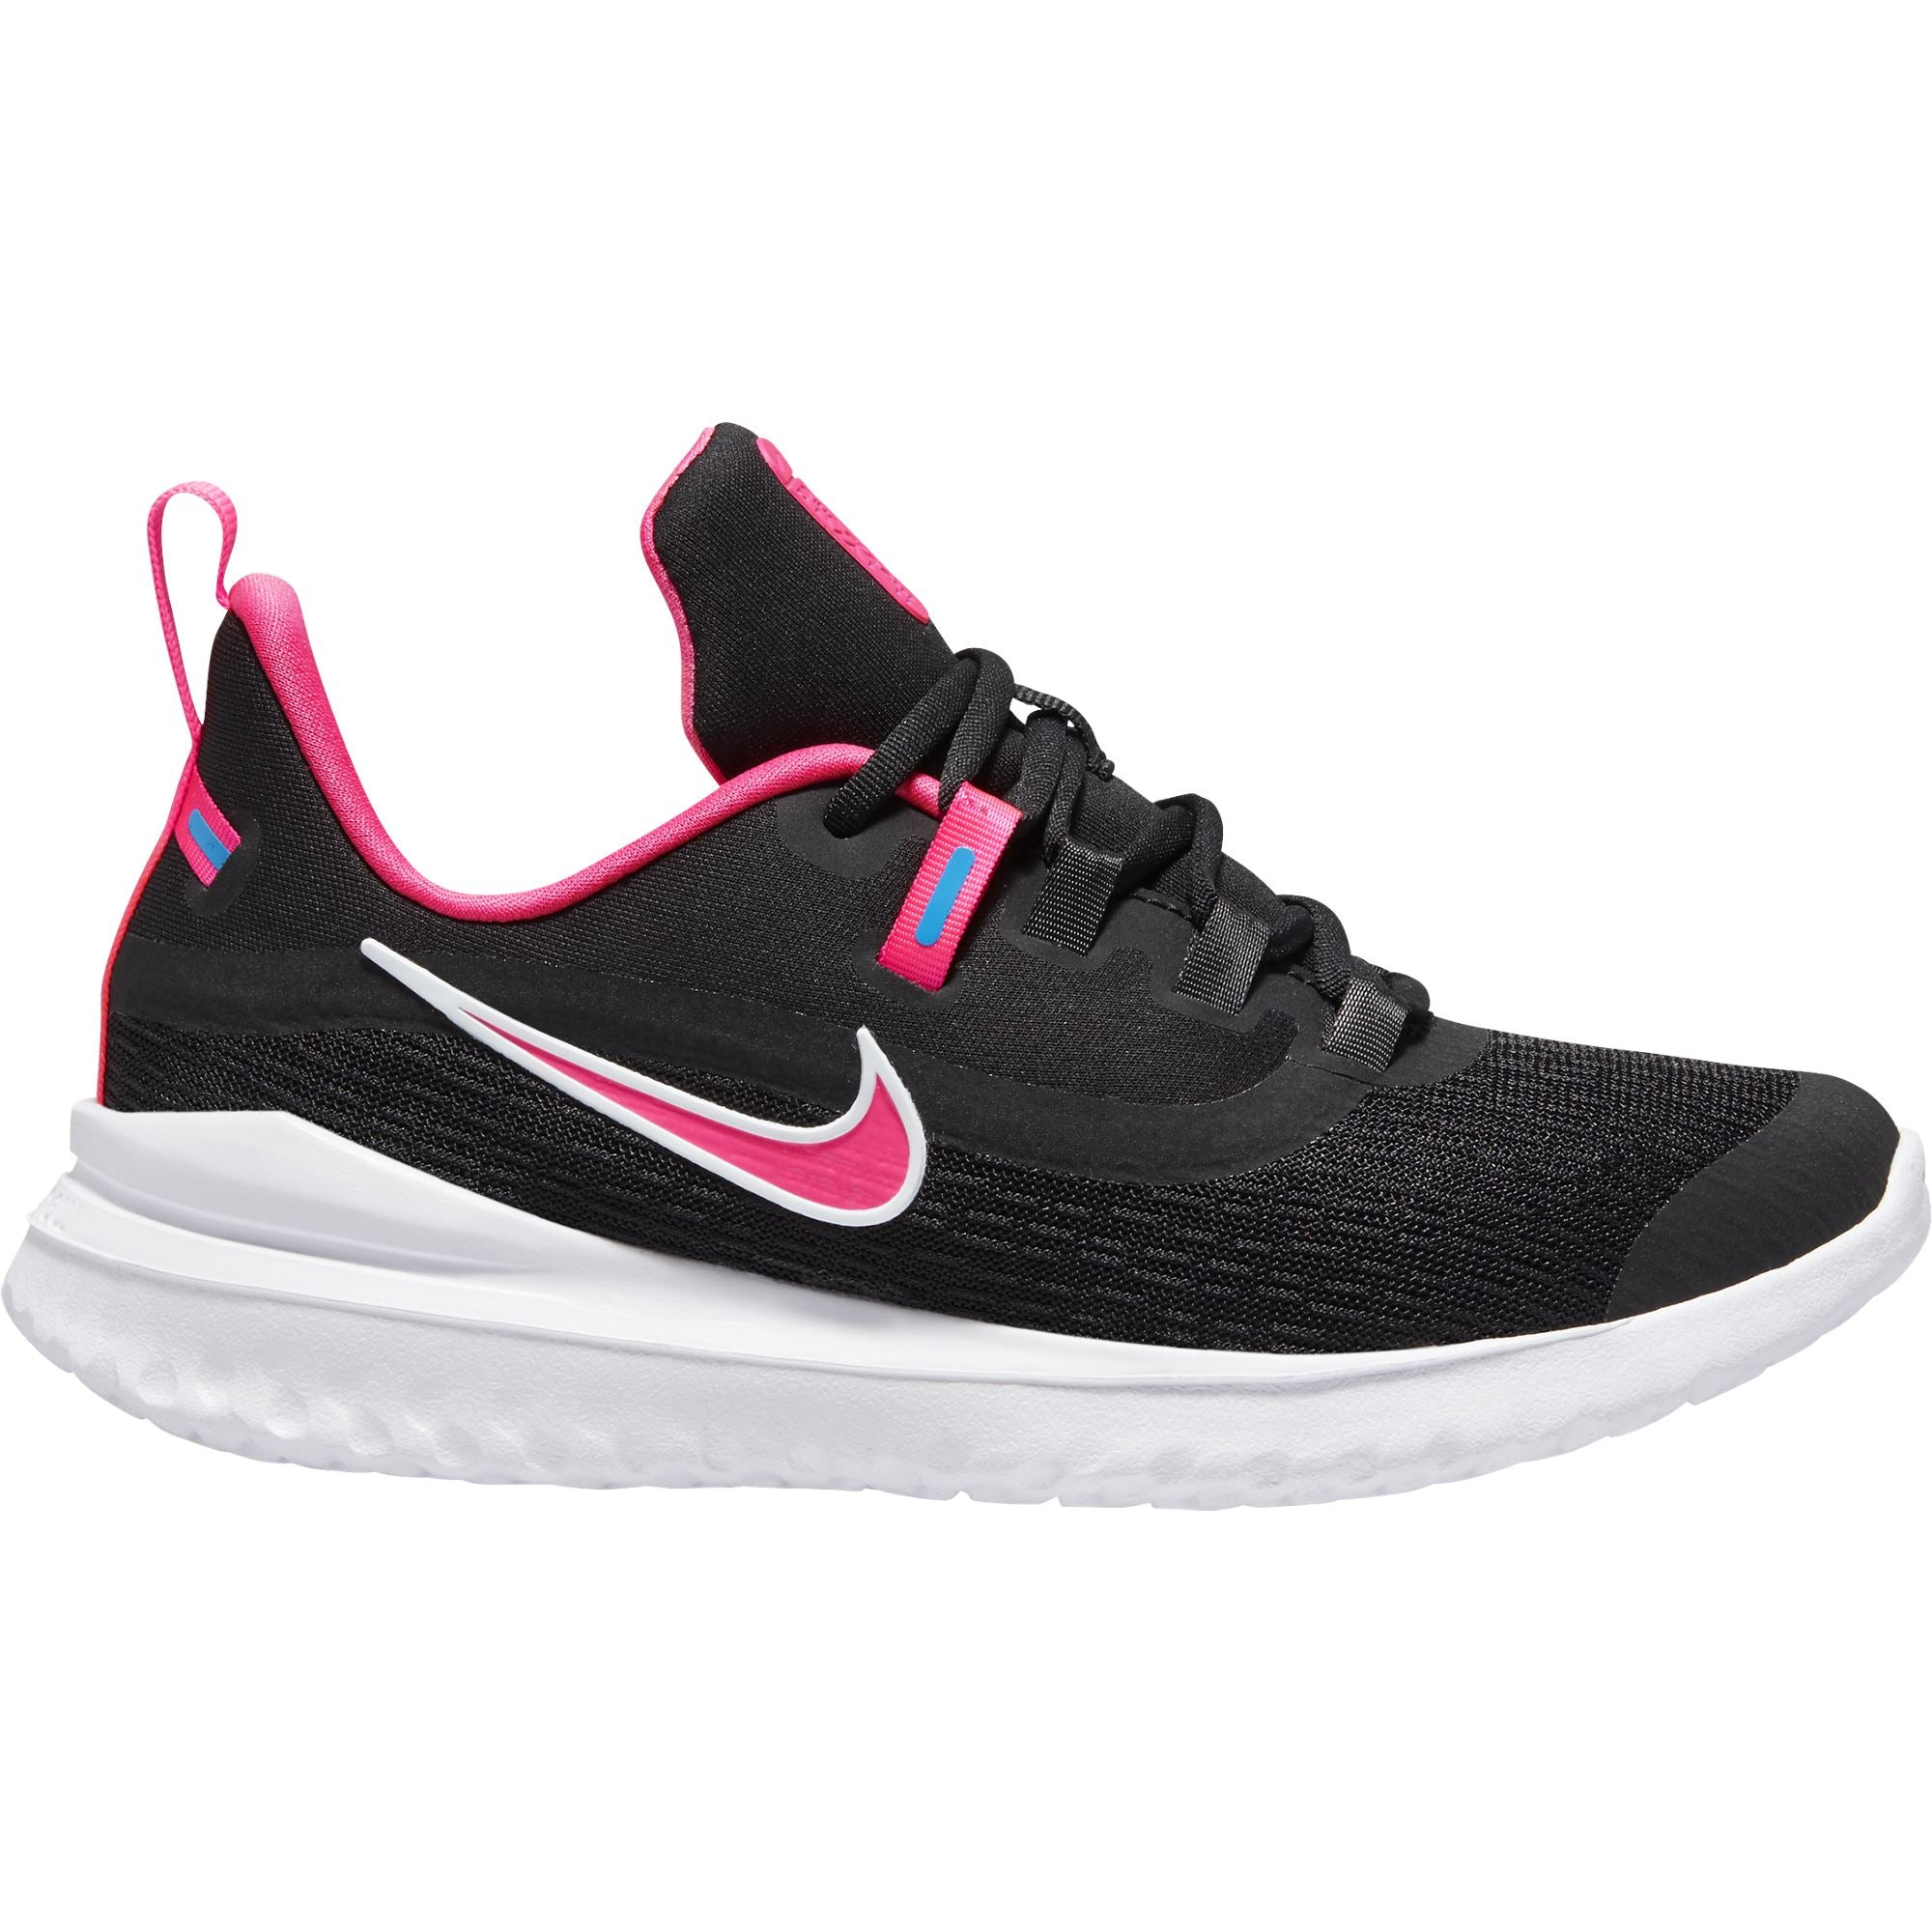 Nike Kids Renew Rival 2 Running Shoe - Black/Hyper Pink-Photo Blue-White SP-Footwear-Kids Nike